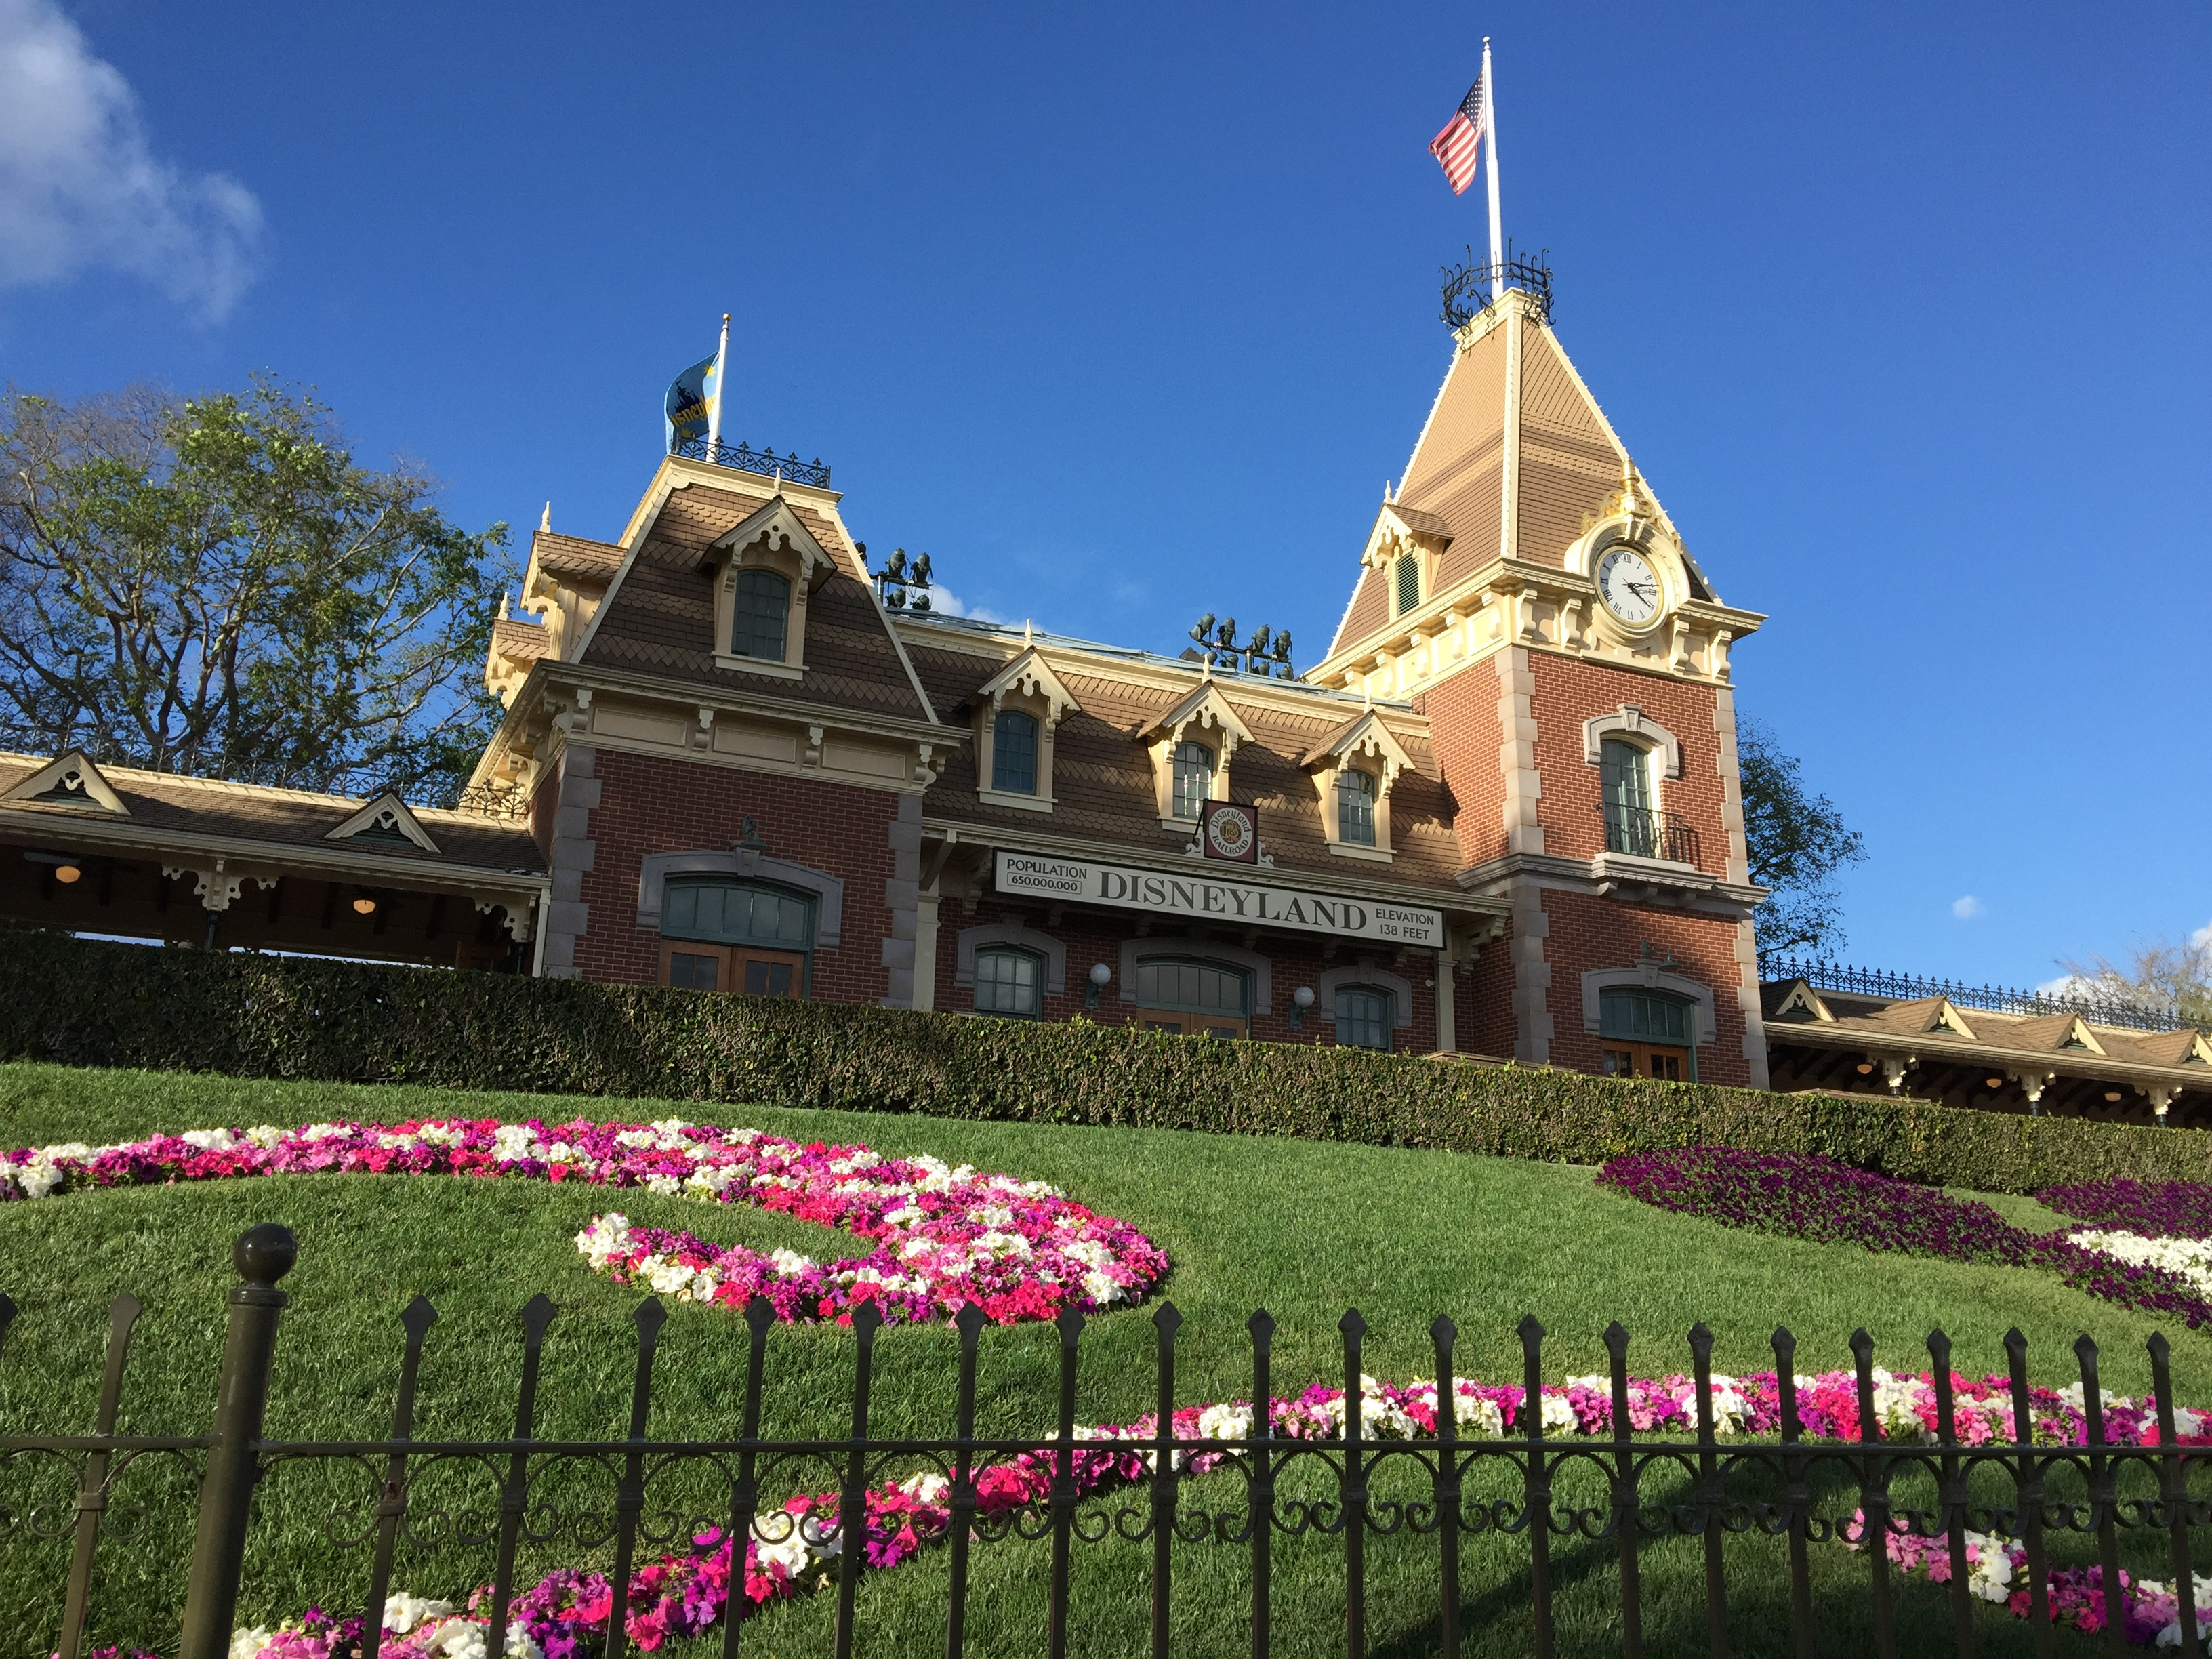 Disneyland Annual Pass vs. Park Hoppers – When Is It Worth it? Update 2020